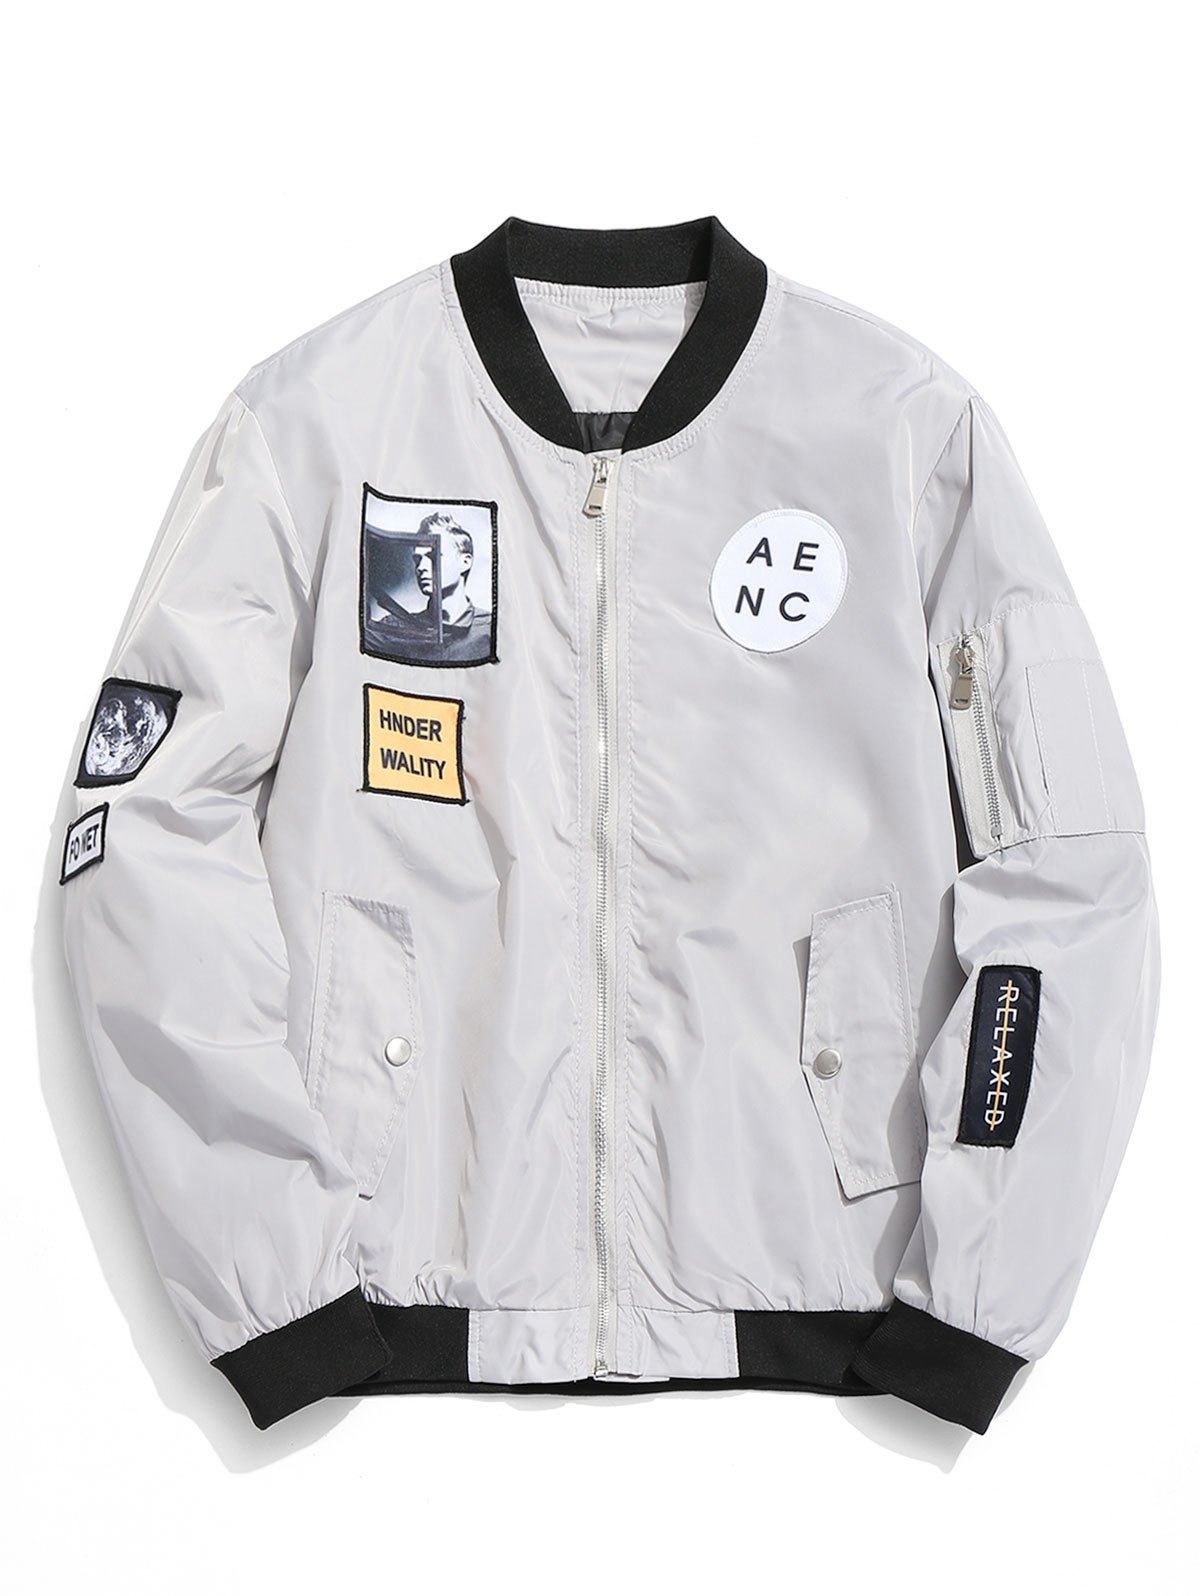 Patched Bomber Jacket, Gray